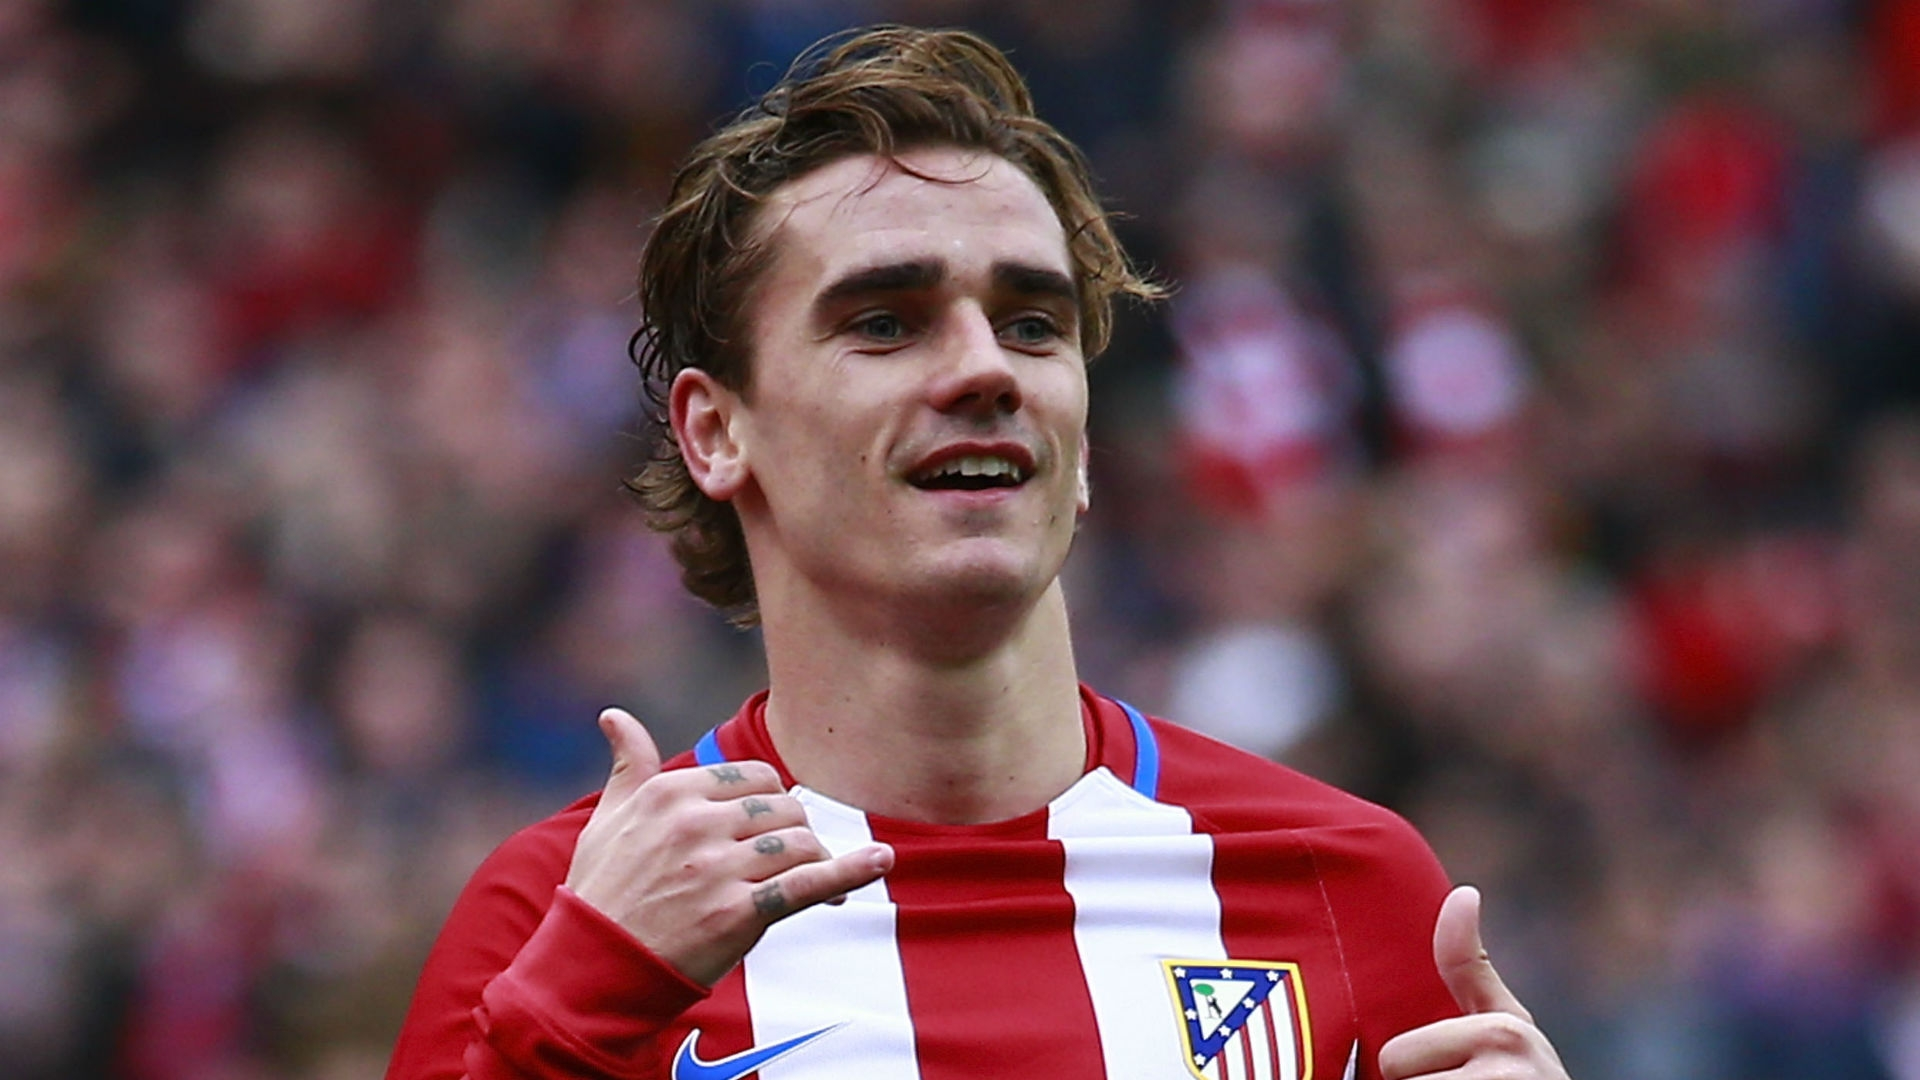 Antoine Griezmann is to remain at Atletico Madrid for at least one more season